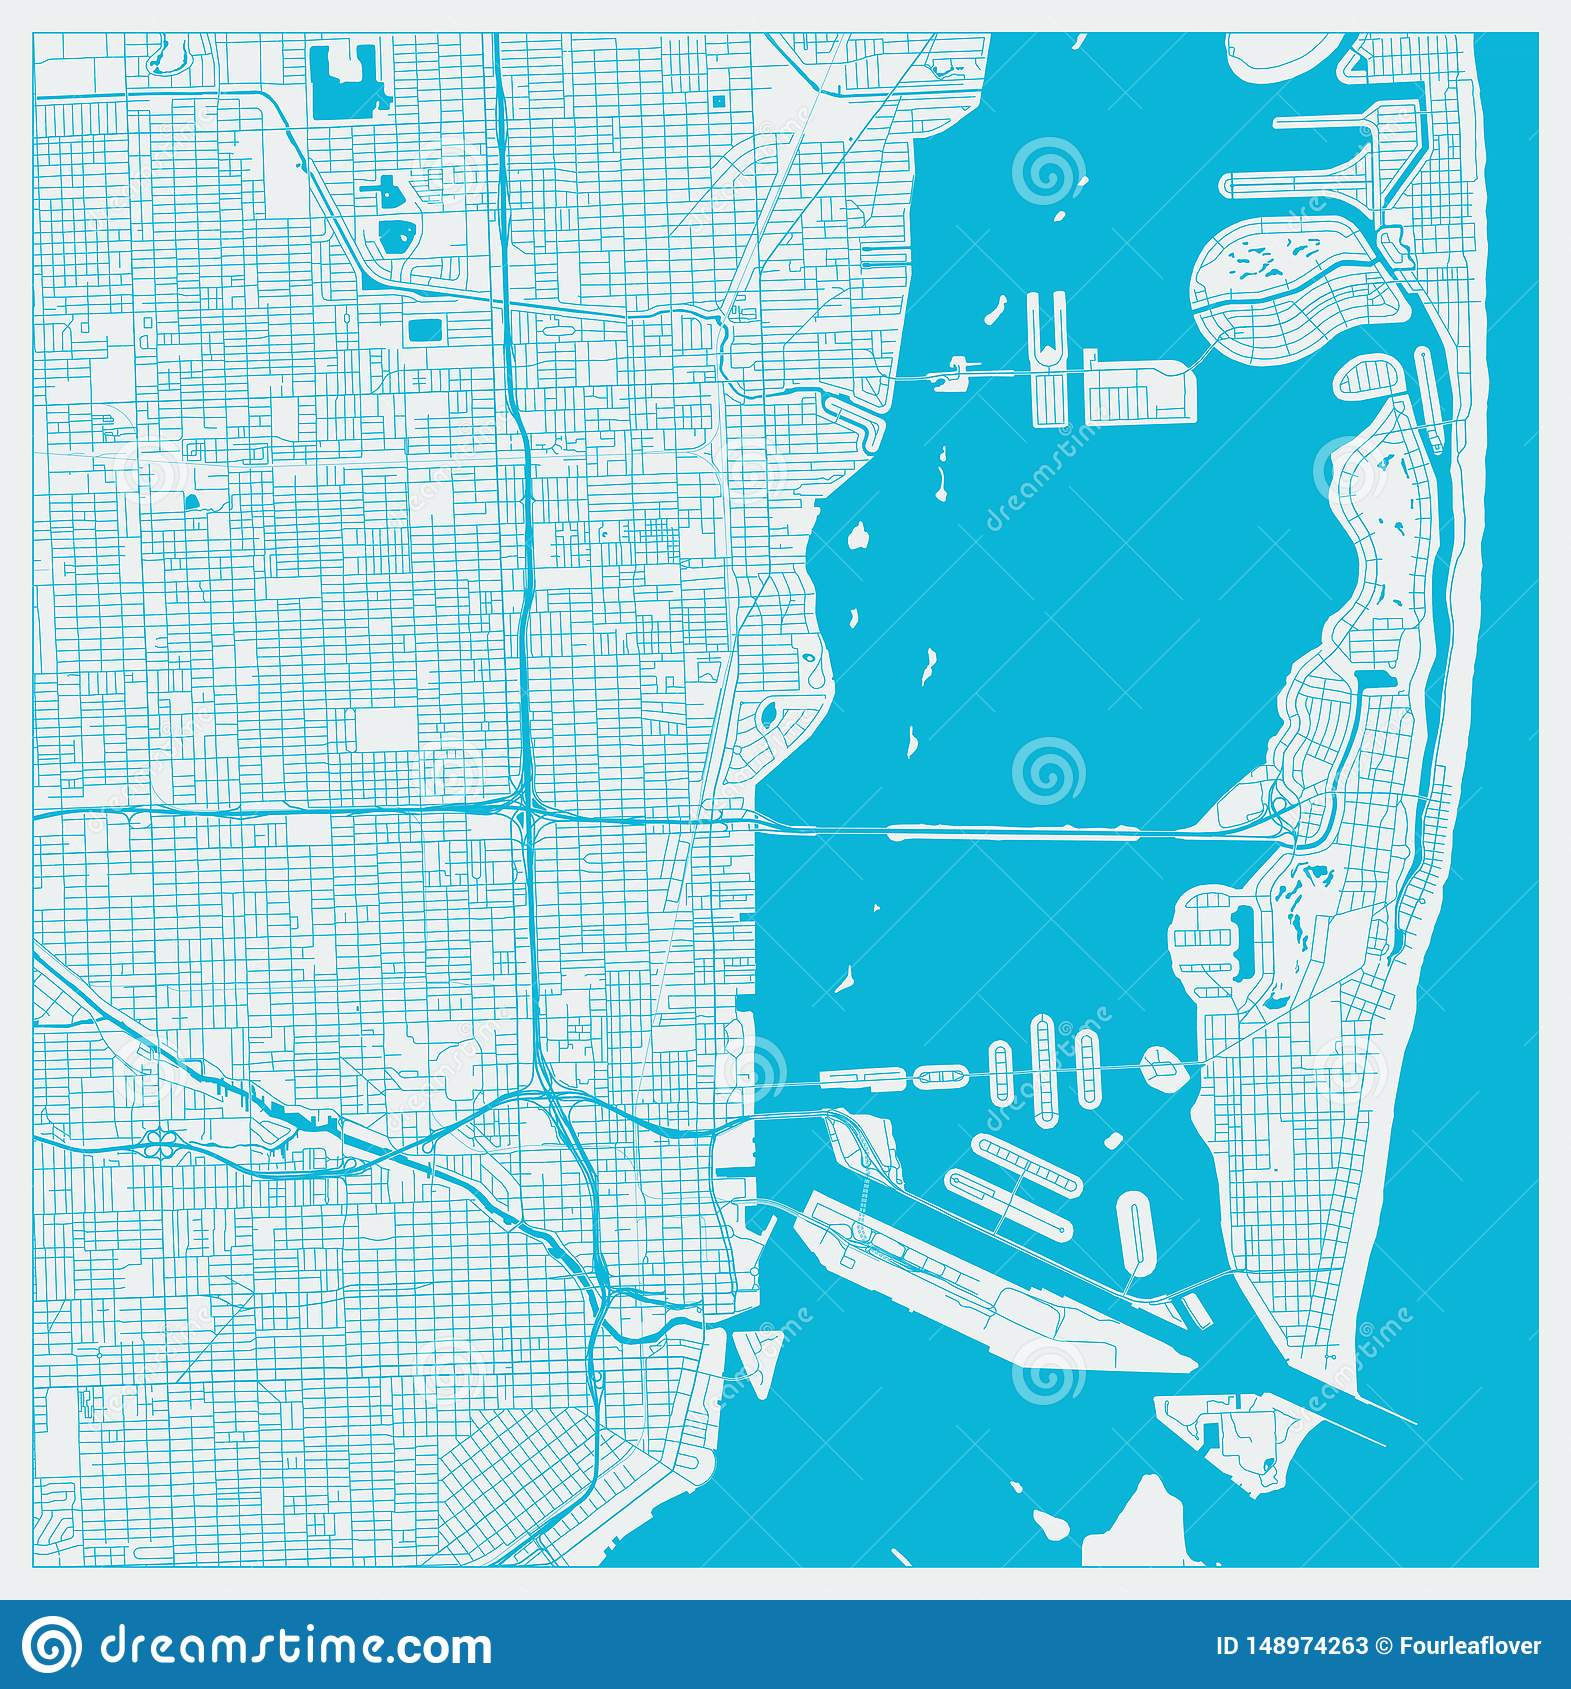 miami, florida, us city map in blue colors. stock vector